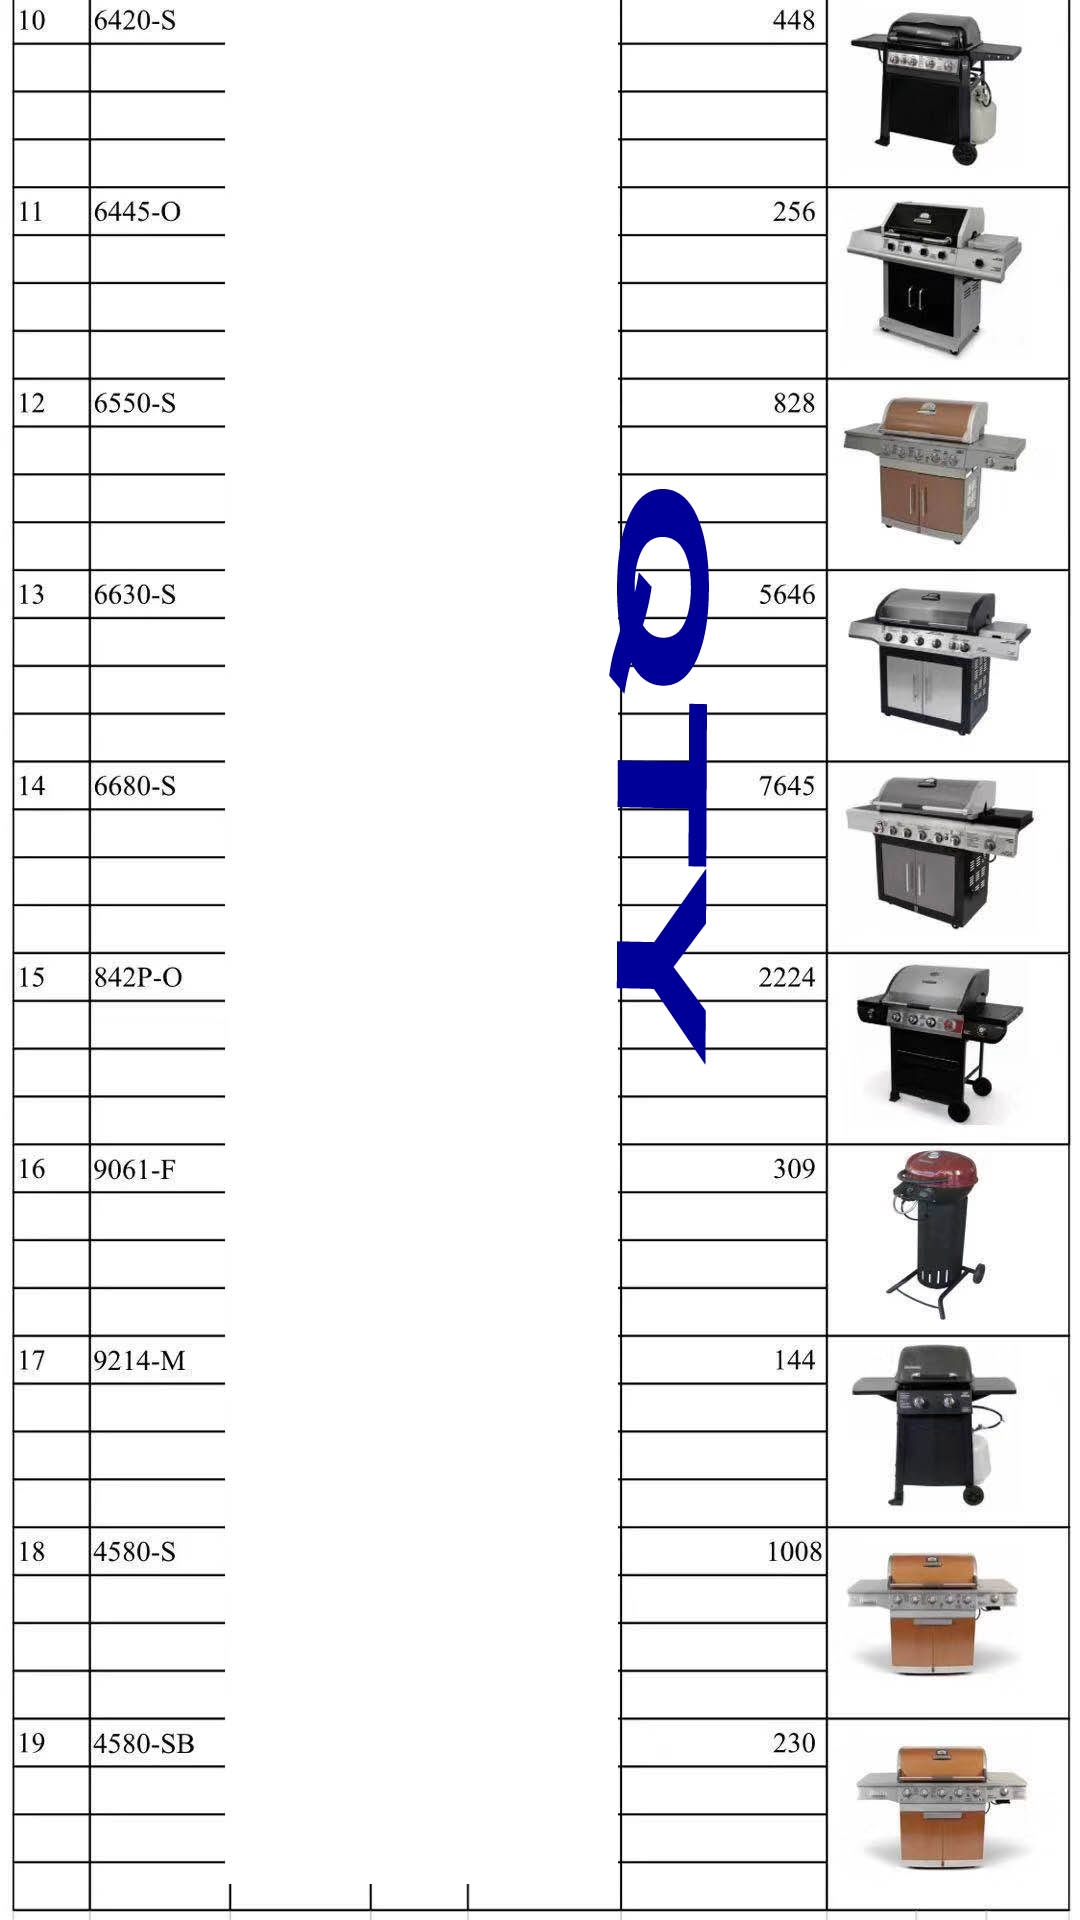 34936 - Barbecue machine China